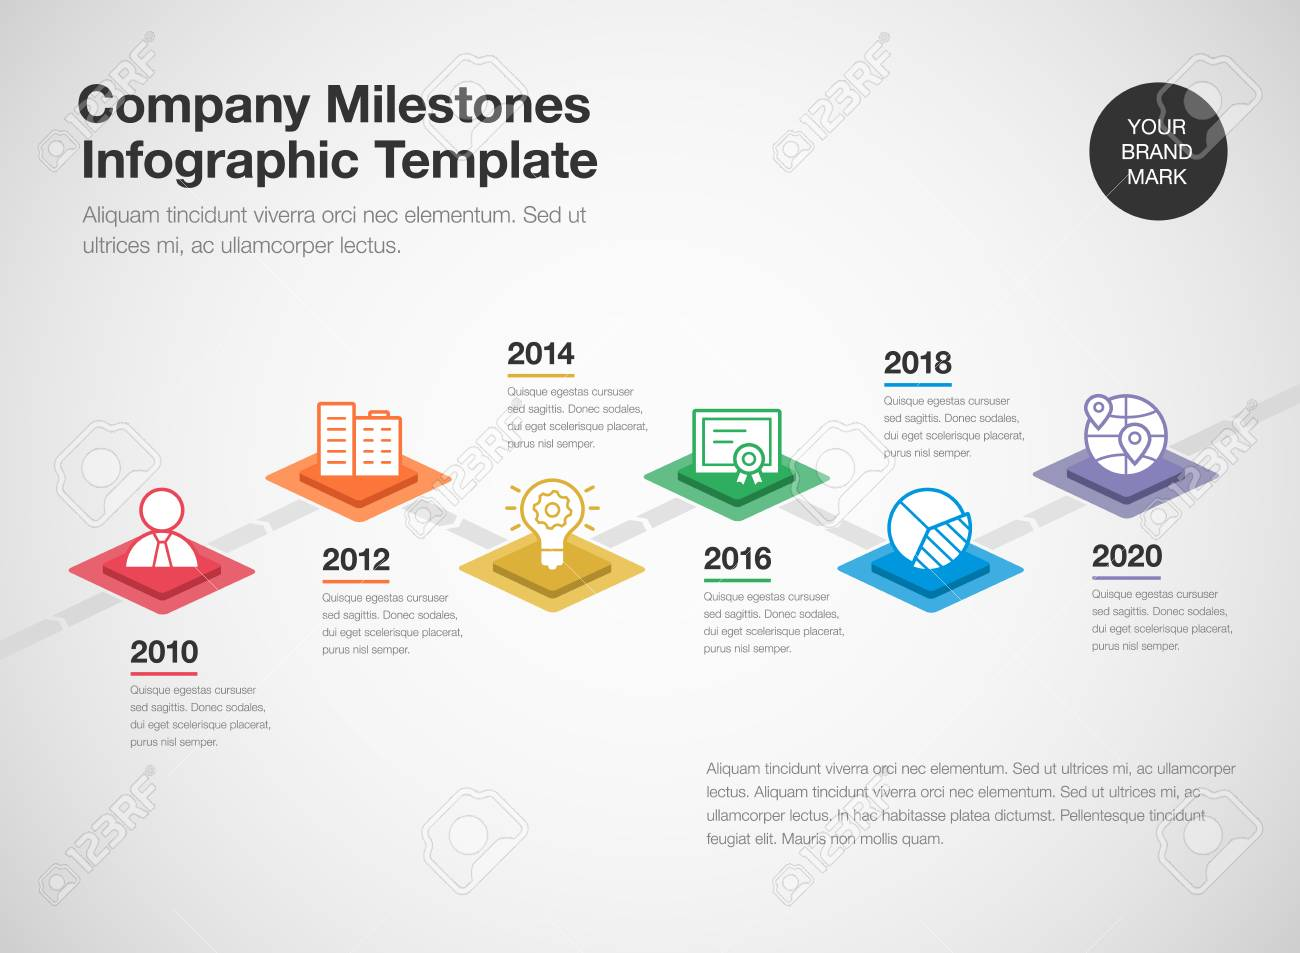 Simple Infographic For A Company Milestones Timeline Template